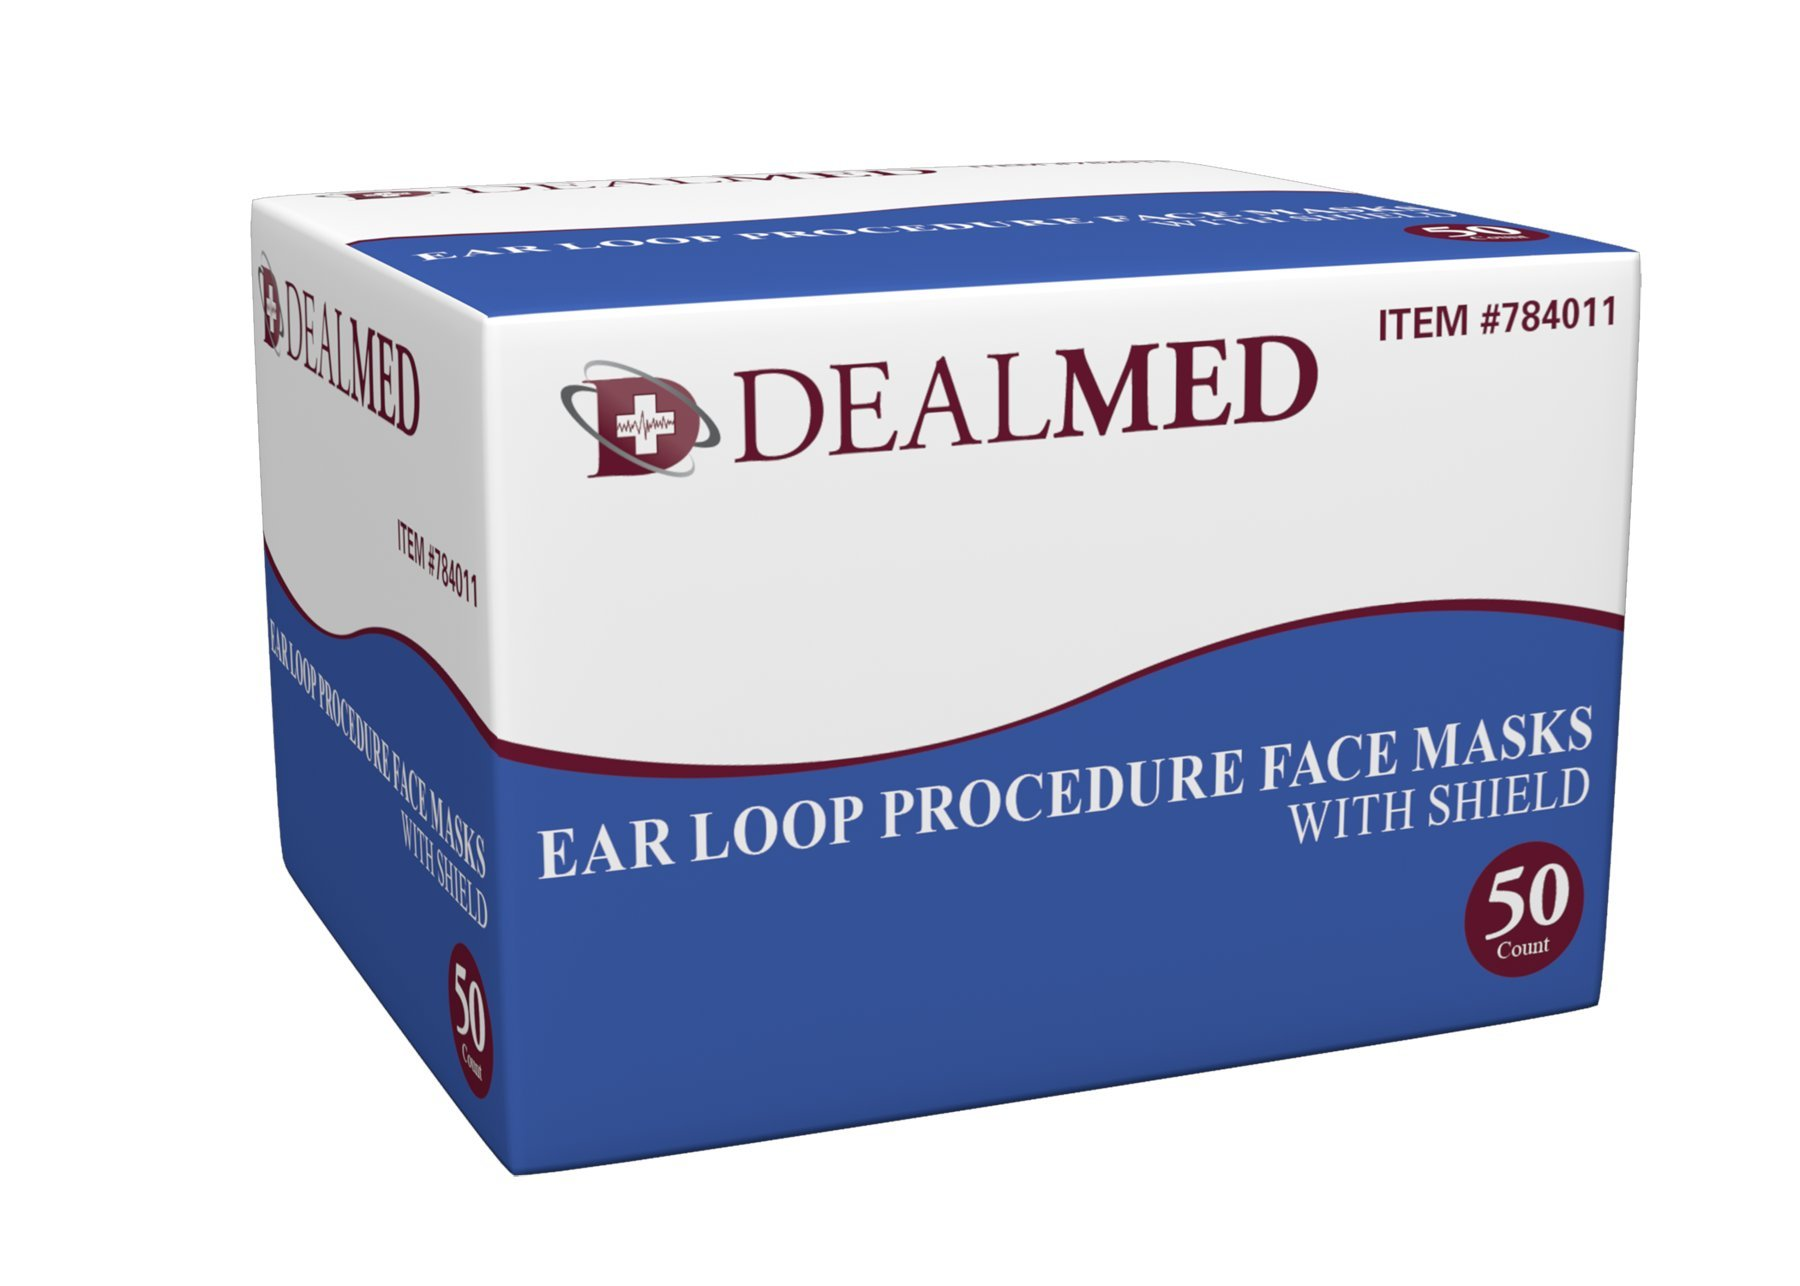 Procedure Face Mask with Eye Sheild, Non-Sterile, Anti-Fog, Single Use, Latex Free, with Ear Loops, Blue, 50 Per Box - Dealmed Brand